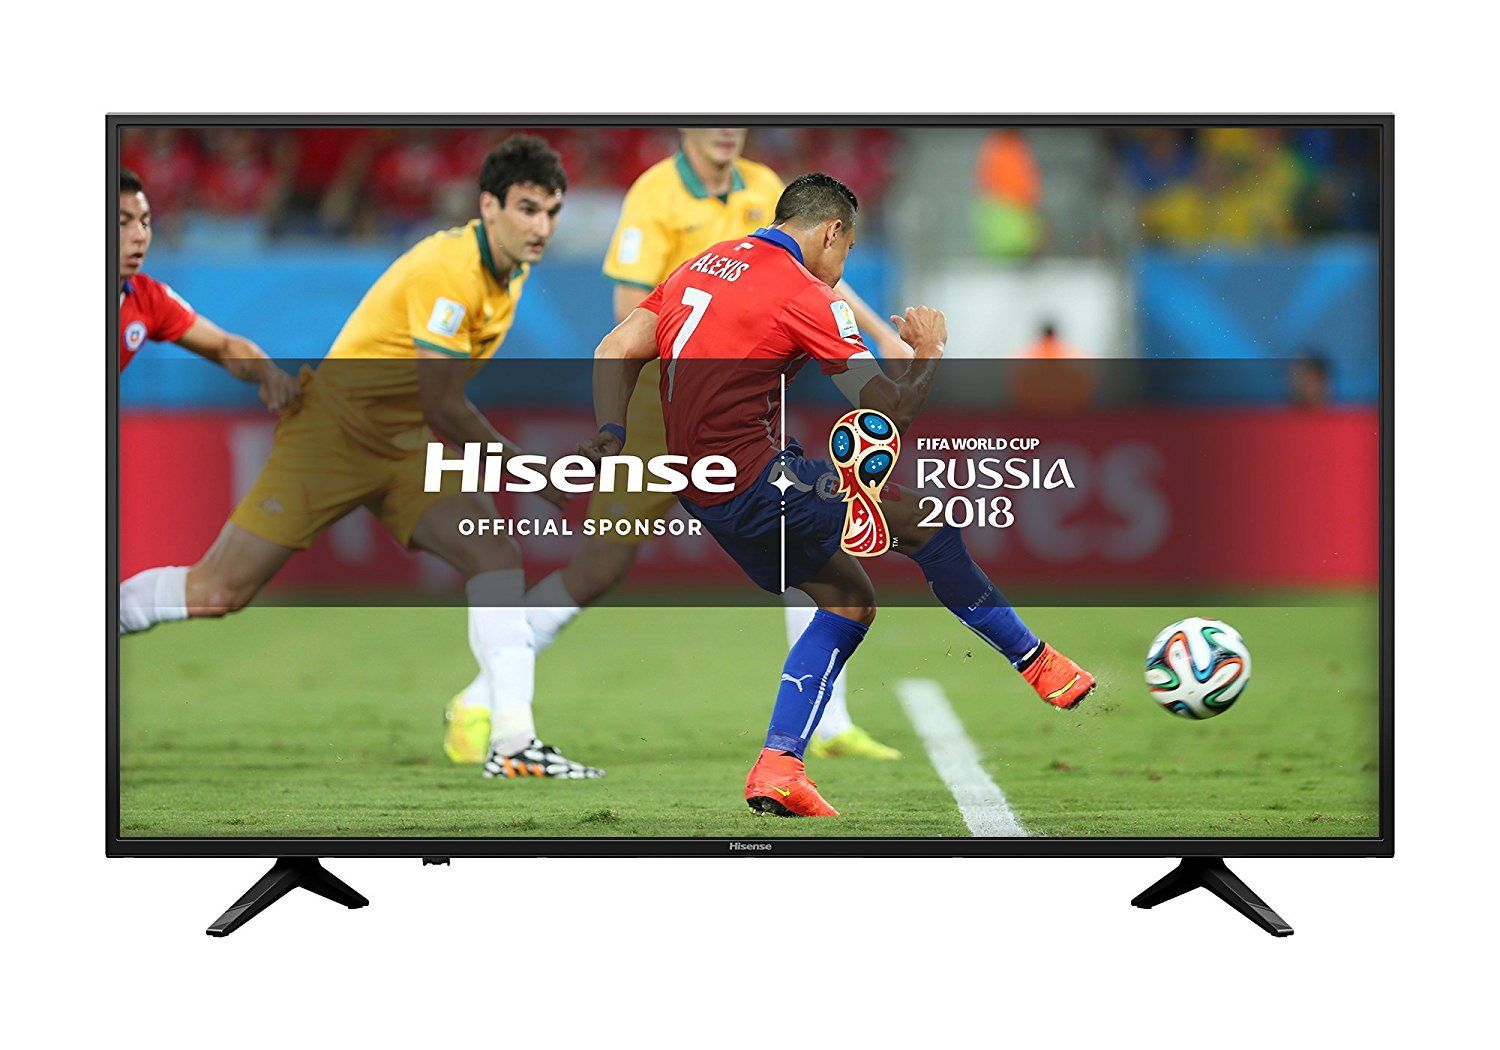 Hisense H50A6200UK 50-Inch 4K Ultra HD Smart TV with Freeview Play Ultra HD 4K HDR TV Hot Deals 2018